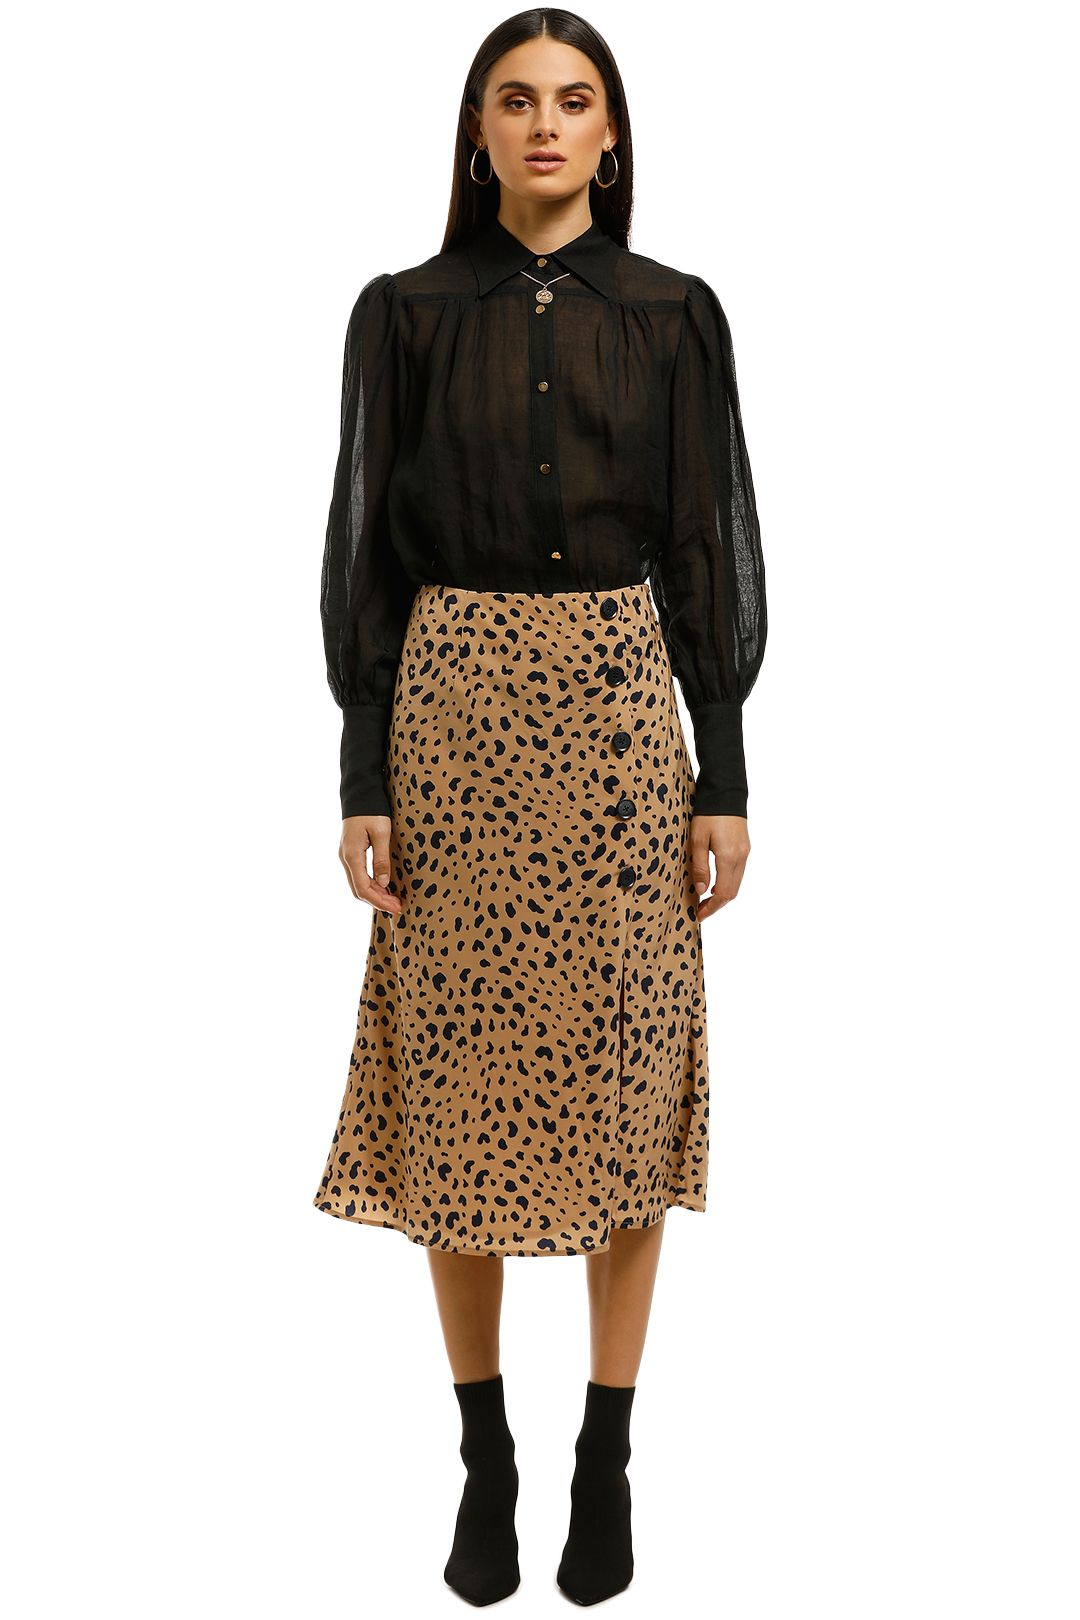 The-East-Order-Scarlett-Midi-Skirt-Animal-Print-Front